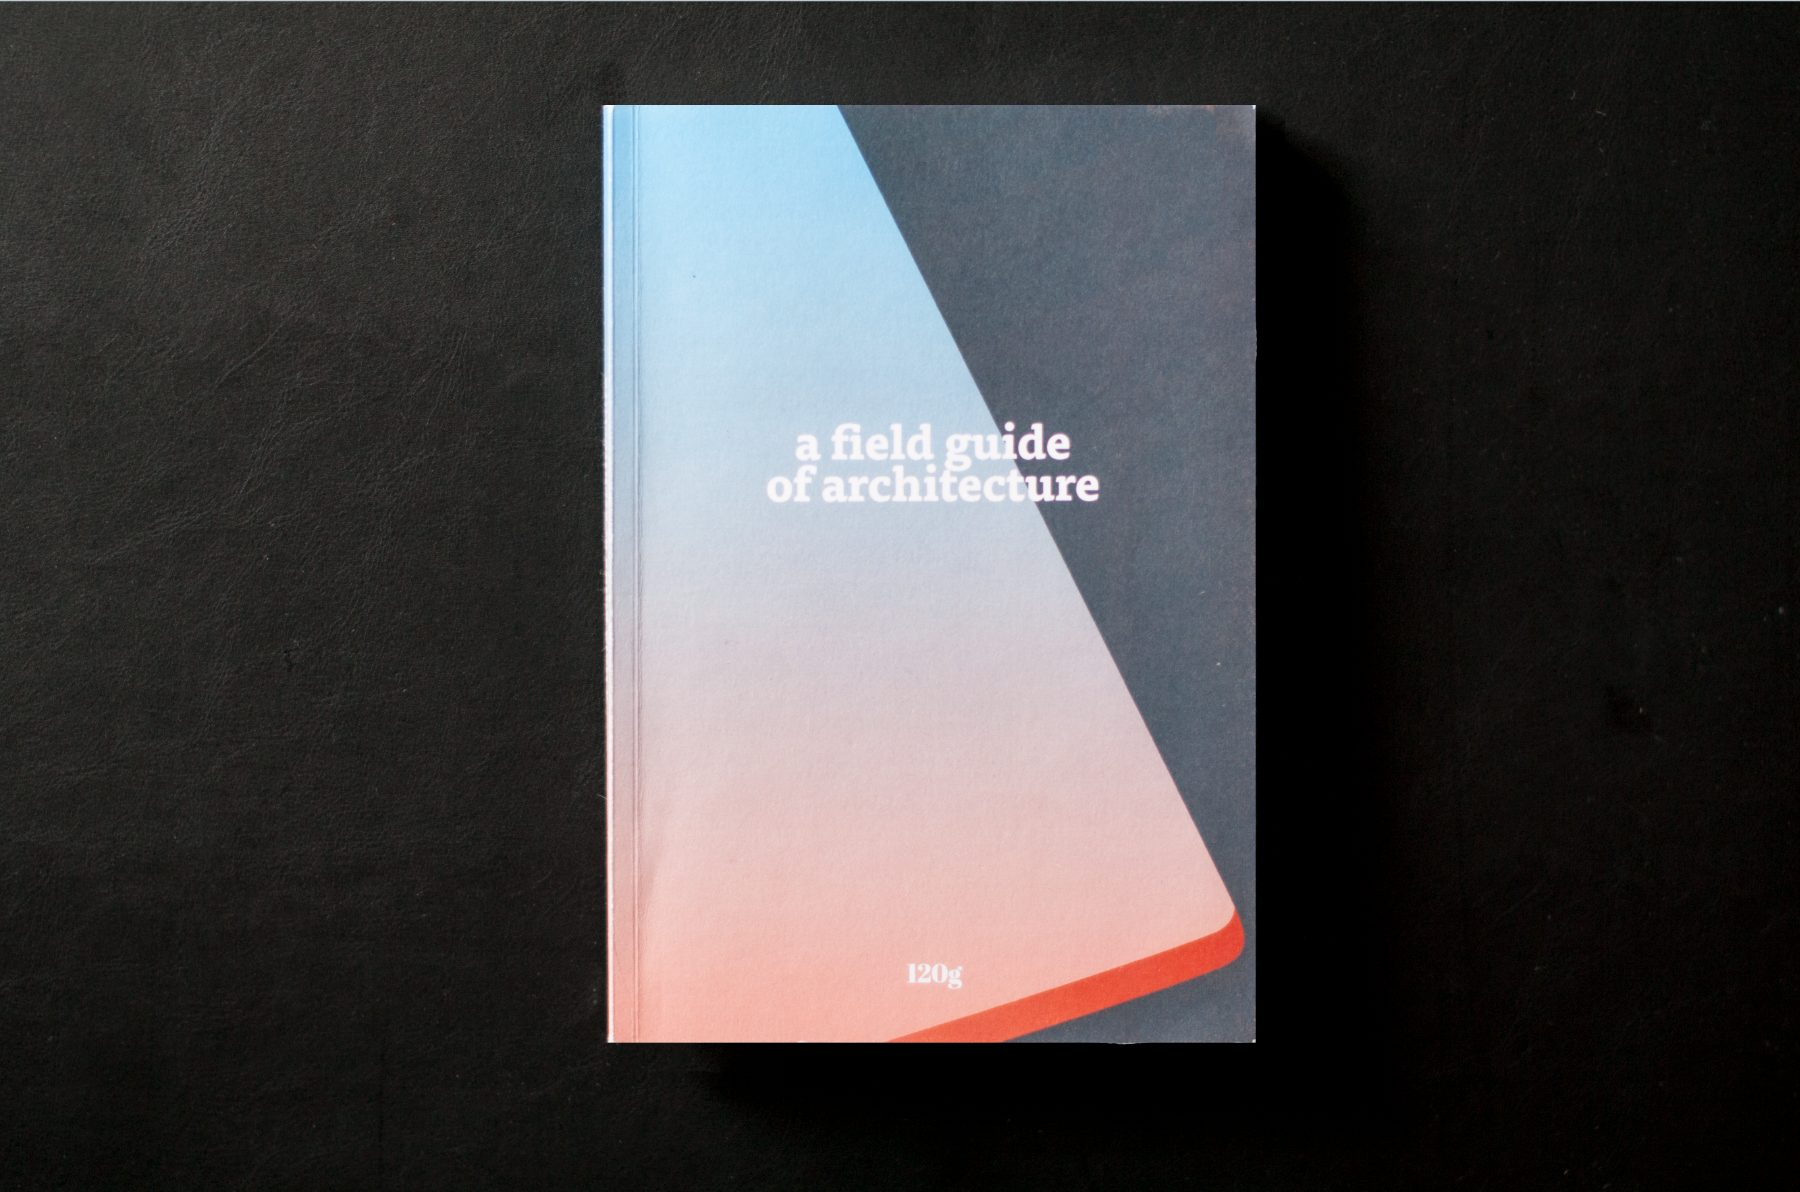 A field guide to architecture